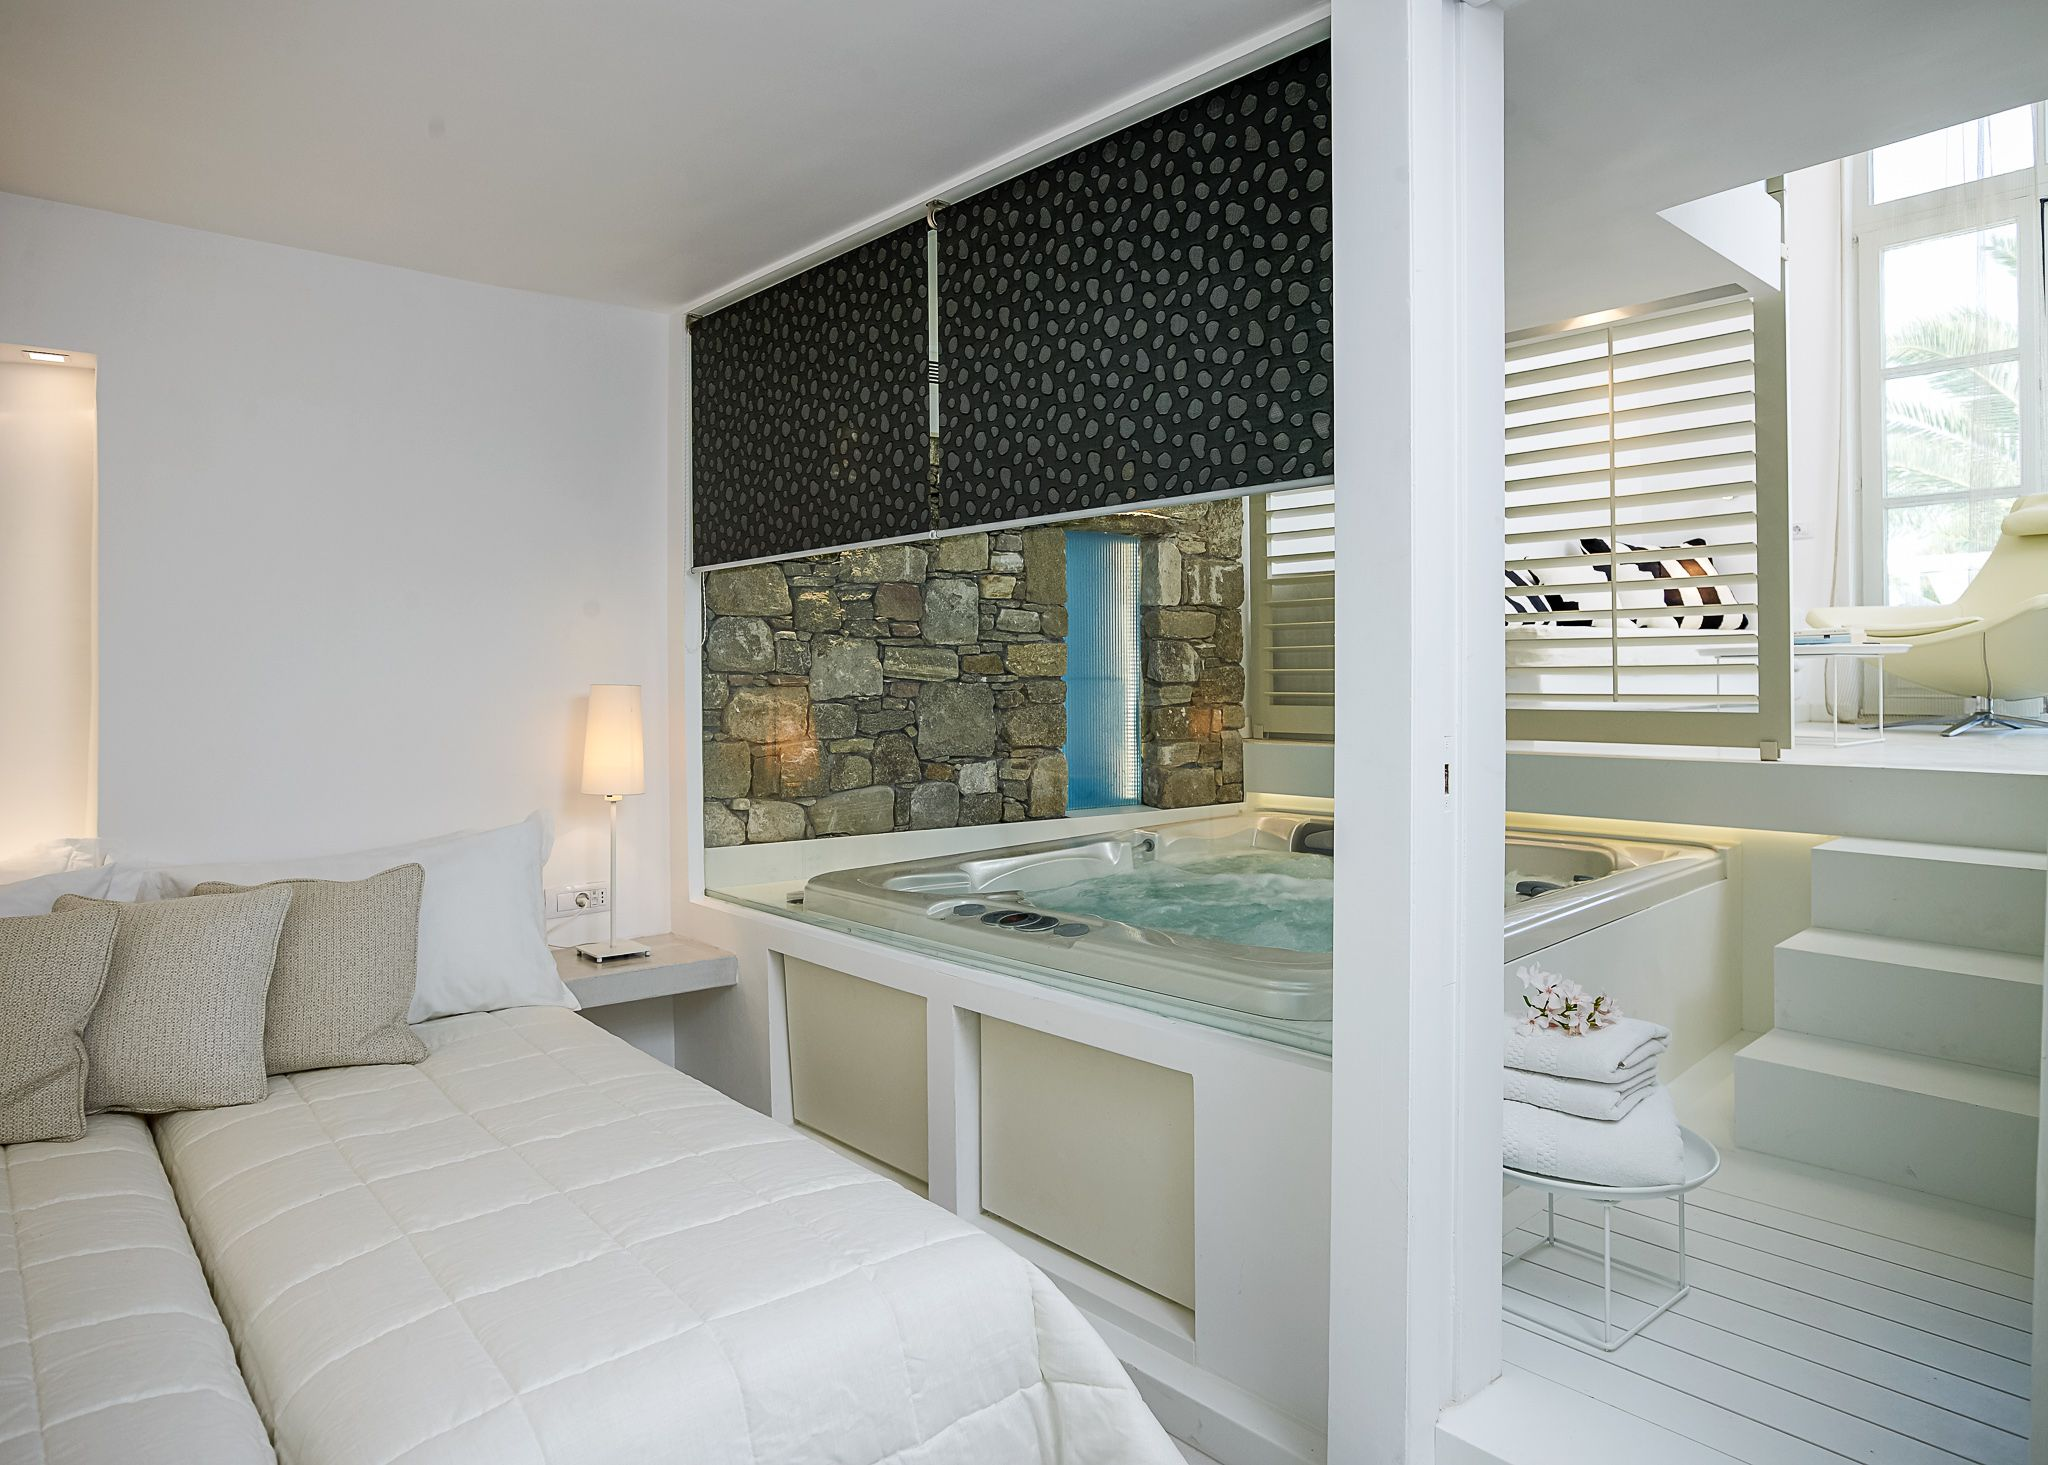 The Luxury Executive Pool View Suite In Mykonos At The Semeli Hotel Offers Privacy Luxury For Up To 5 Guests Perfec Jacuzzi Room Luxury Hotel Indoor Jacuzzi